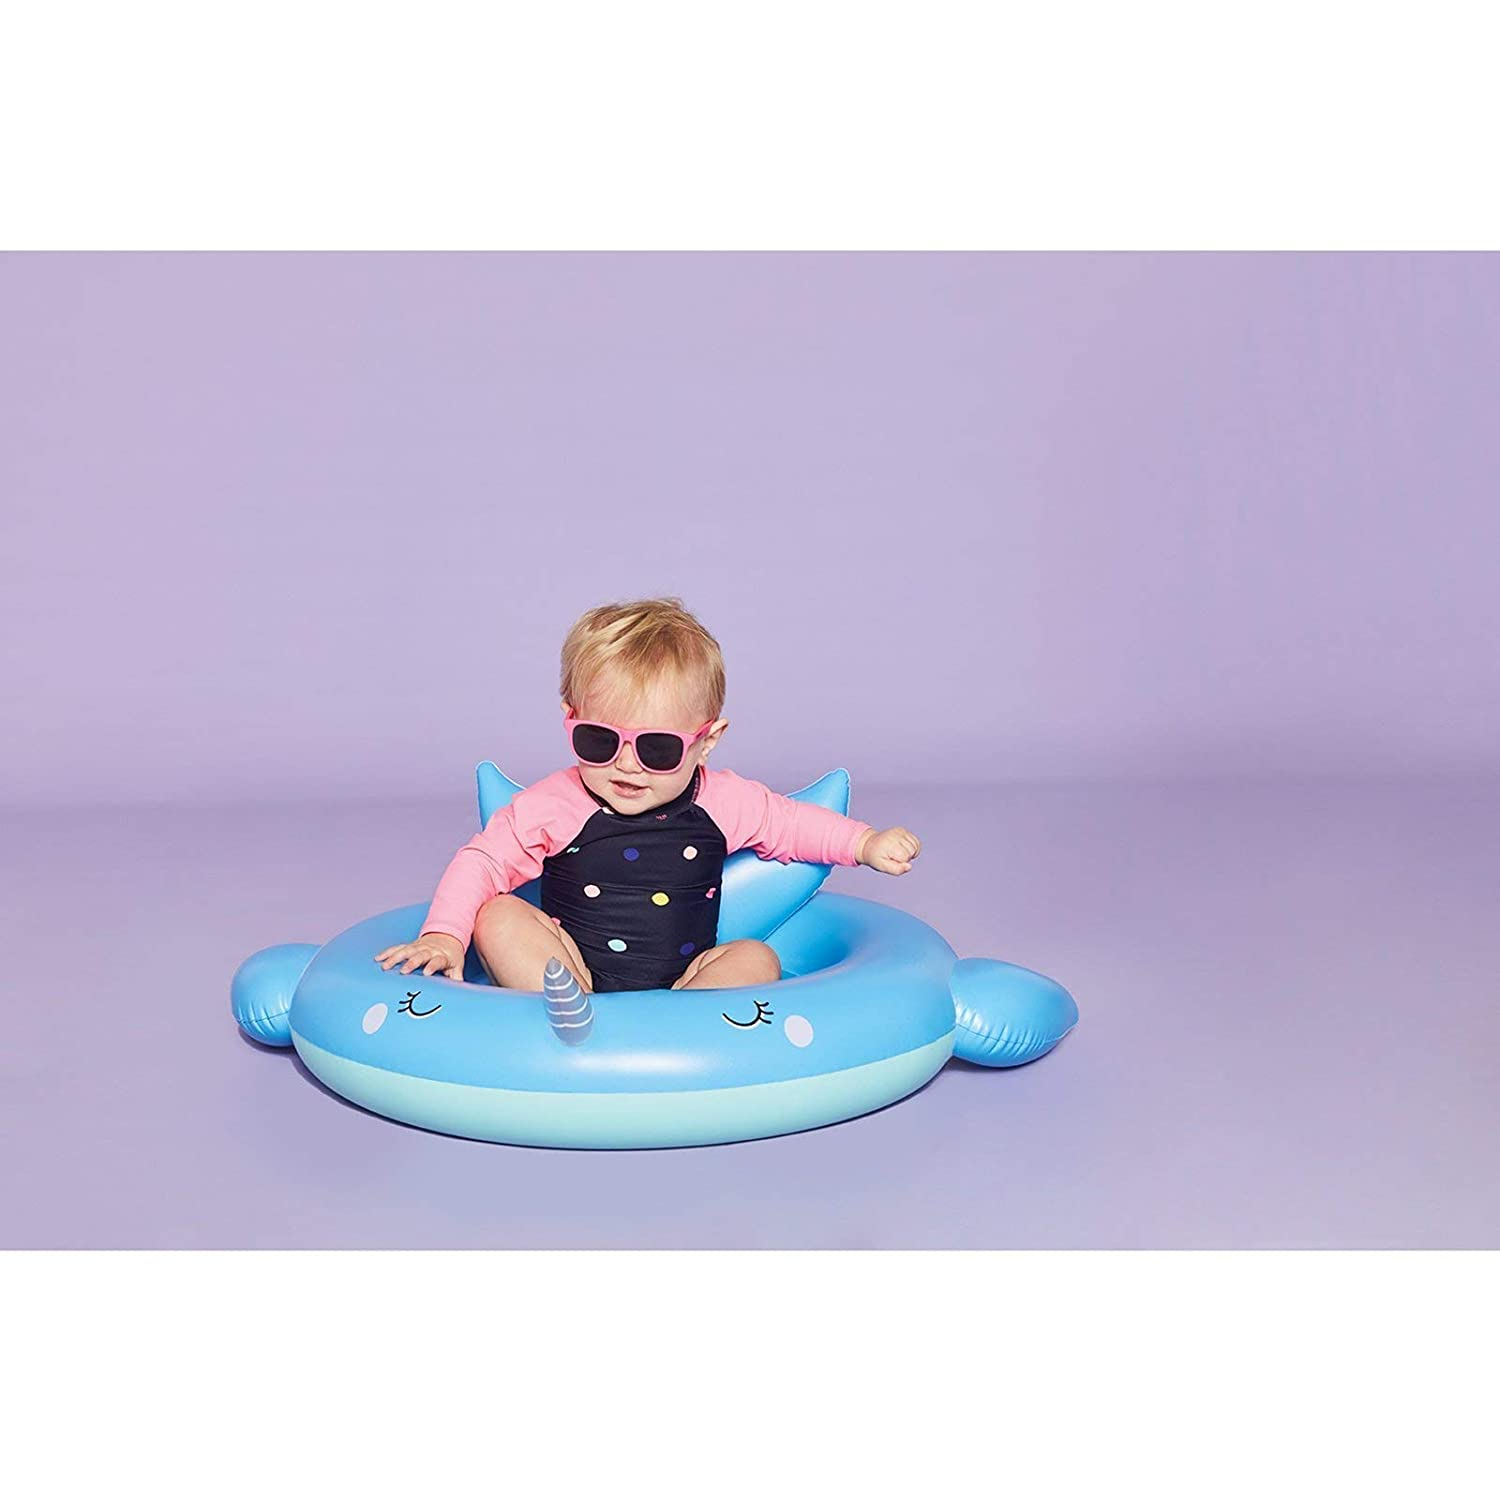 Sunnylife Kids Inflatable Pool or Beach Floating Seat Raft for Baby or Infants